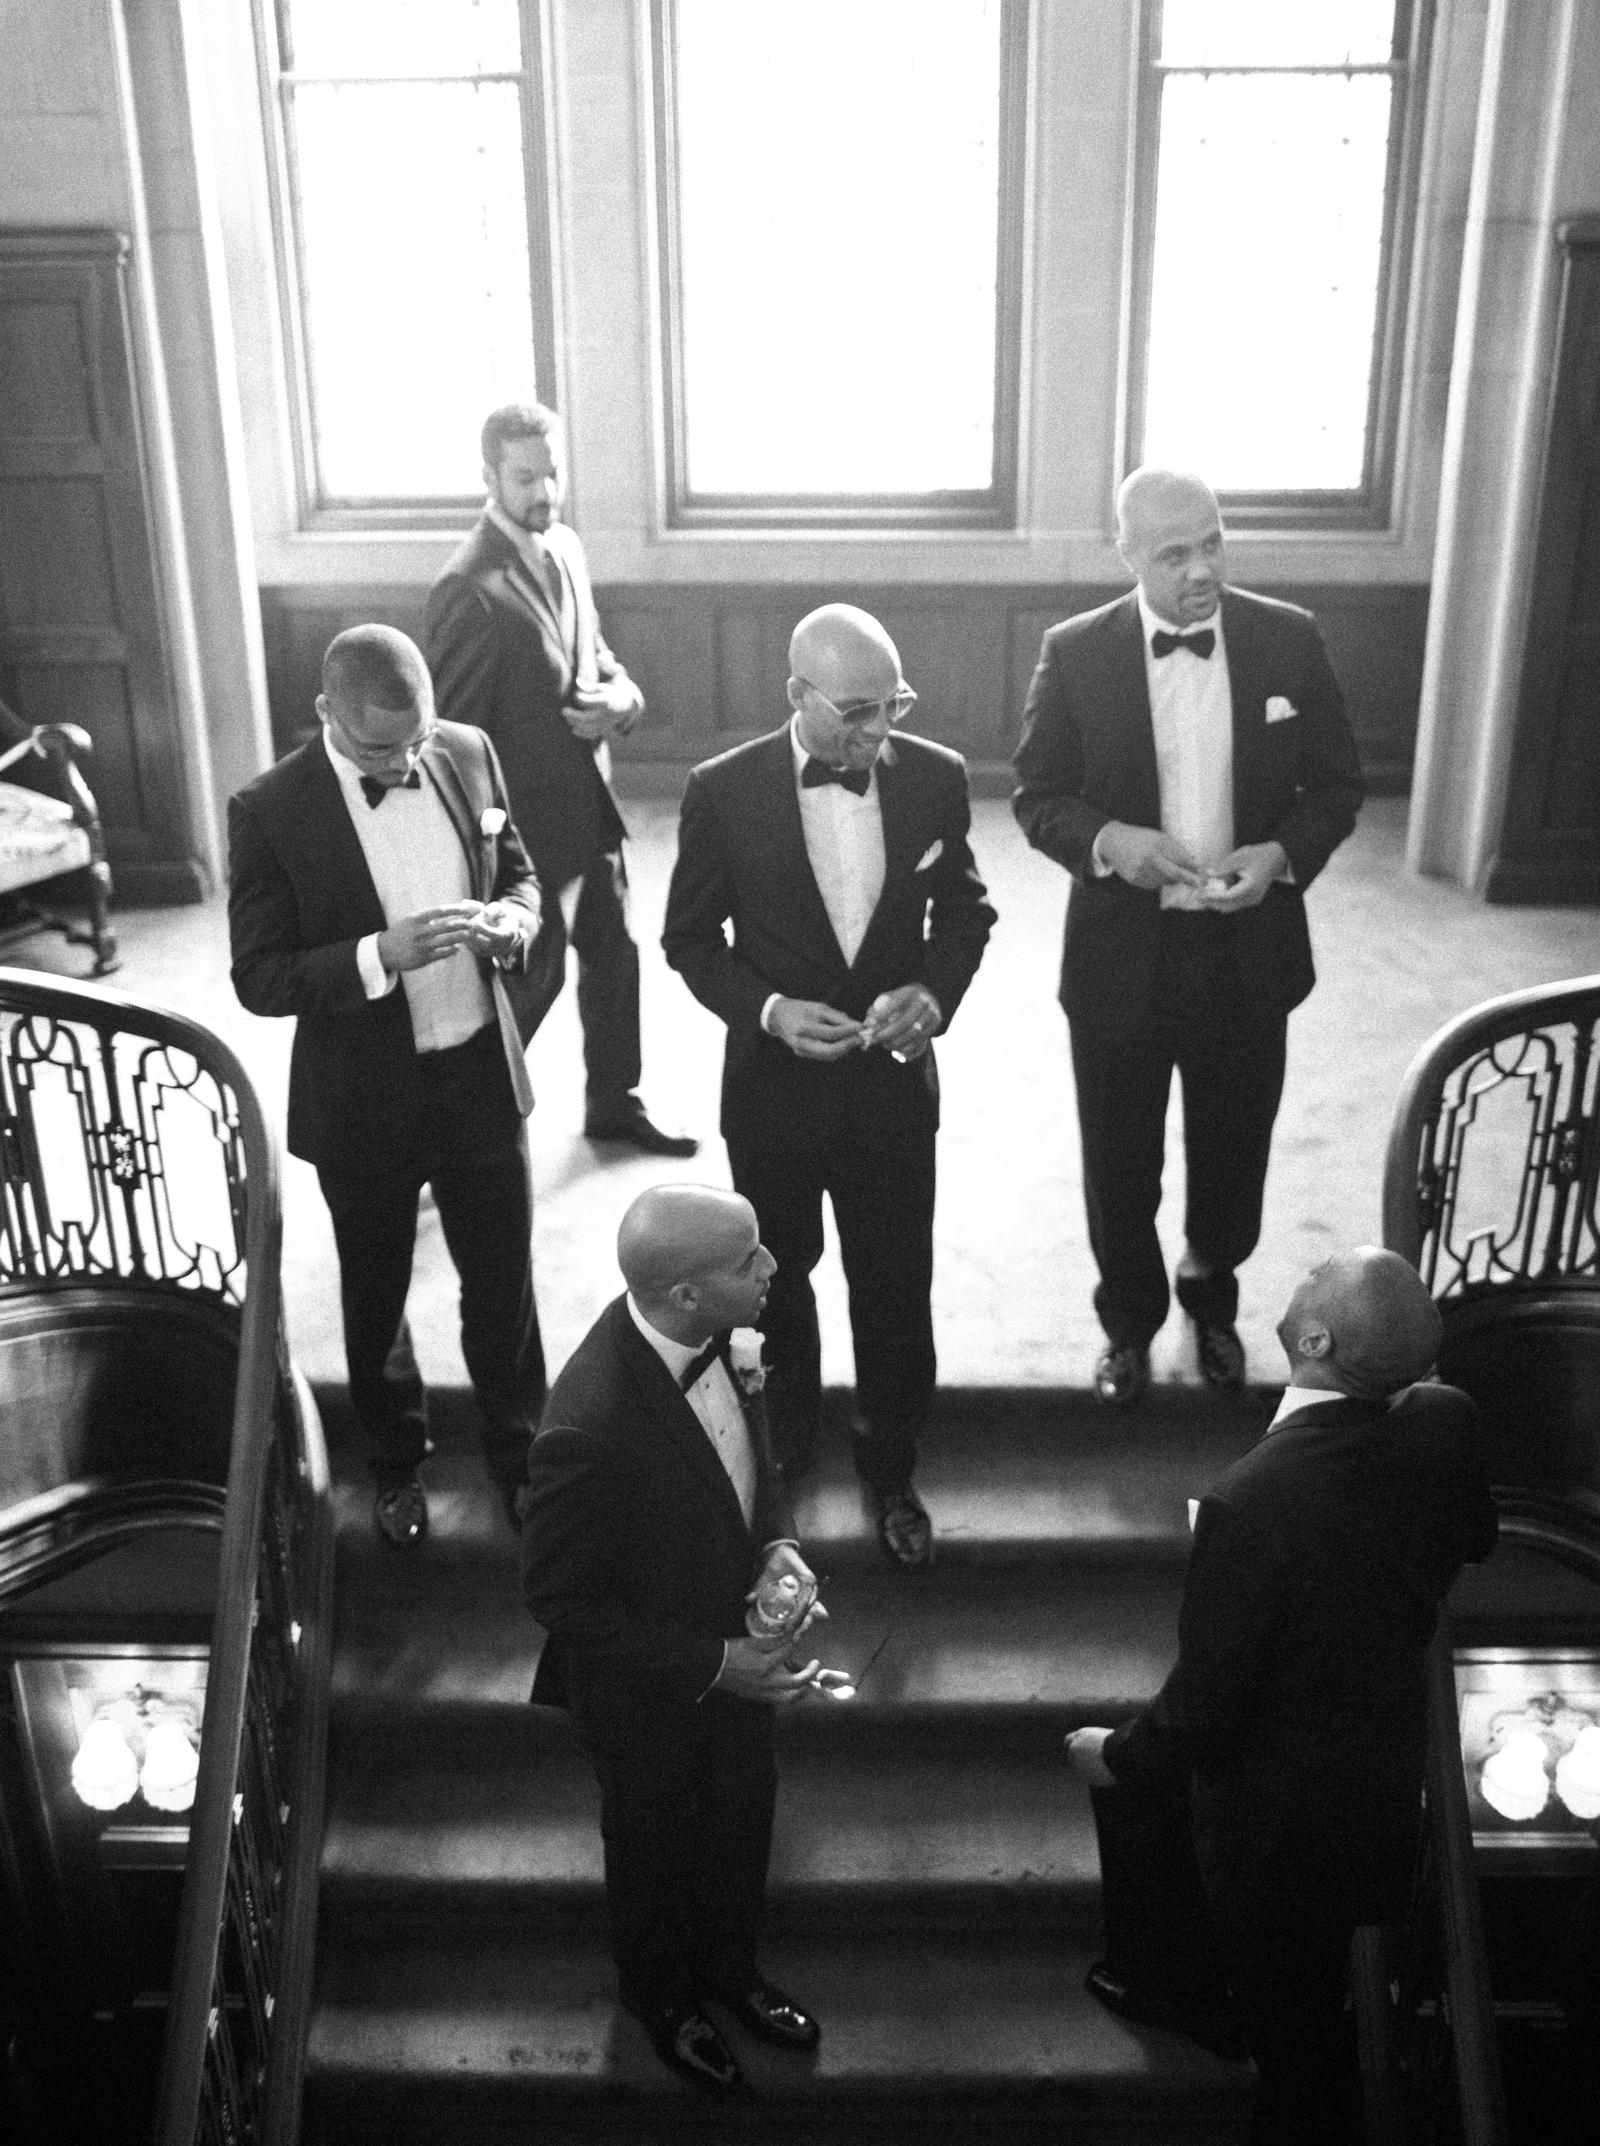 Wedding Photography | A groom and his groomsmen stand at the top of a stairwell, sharing a moment before the wedding.